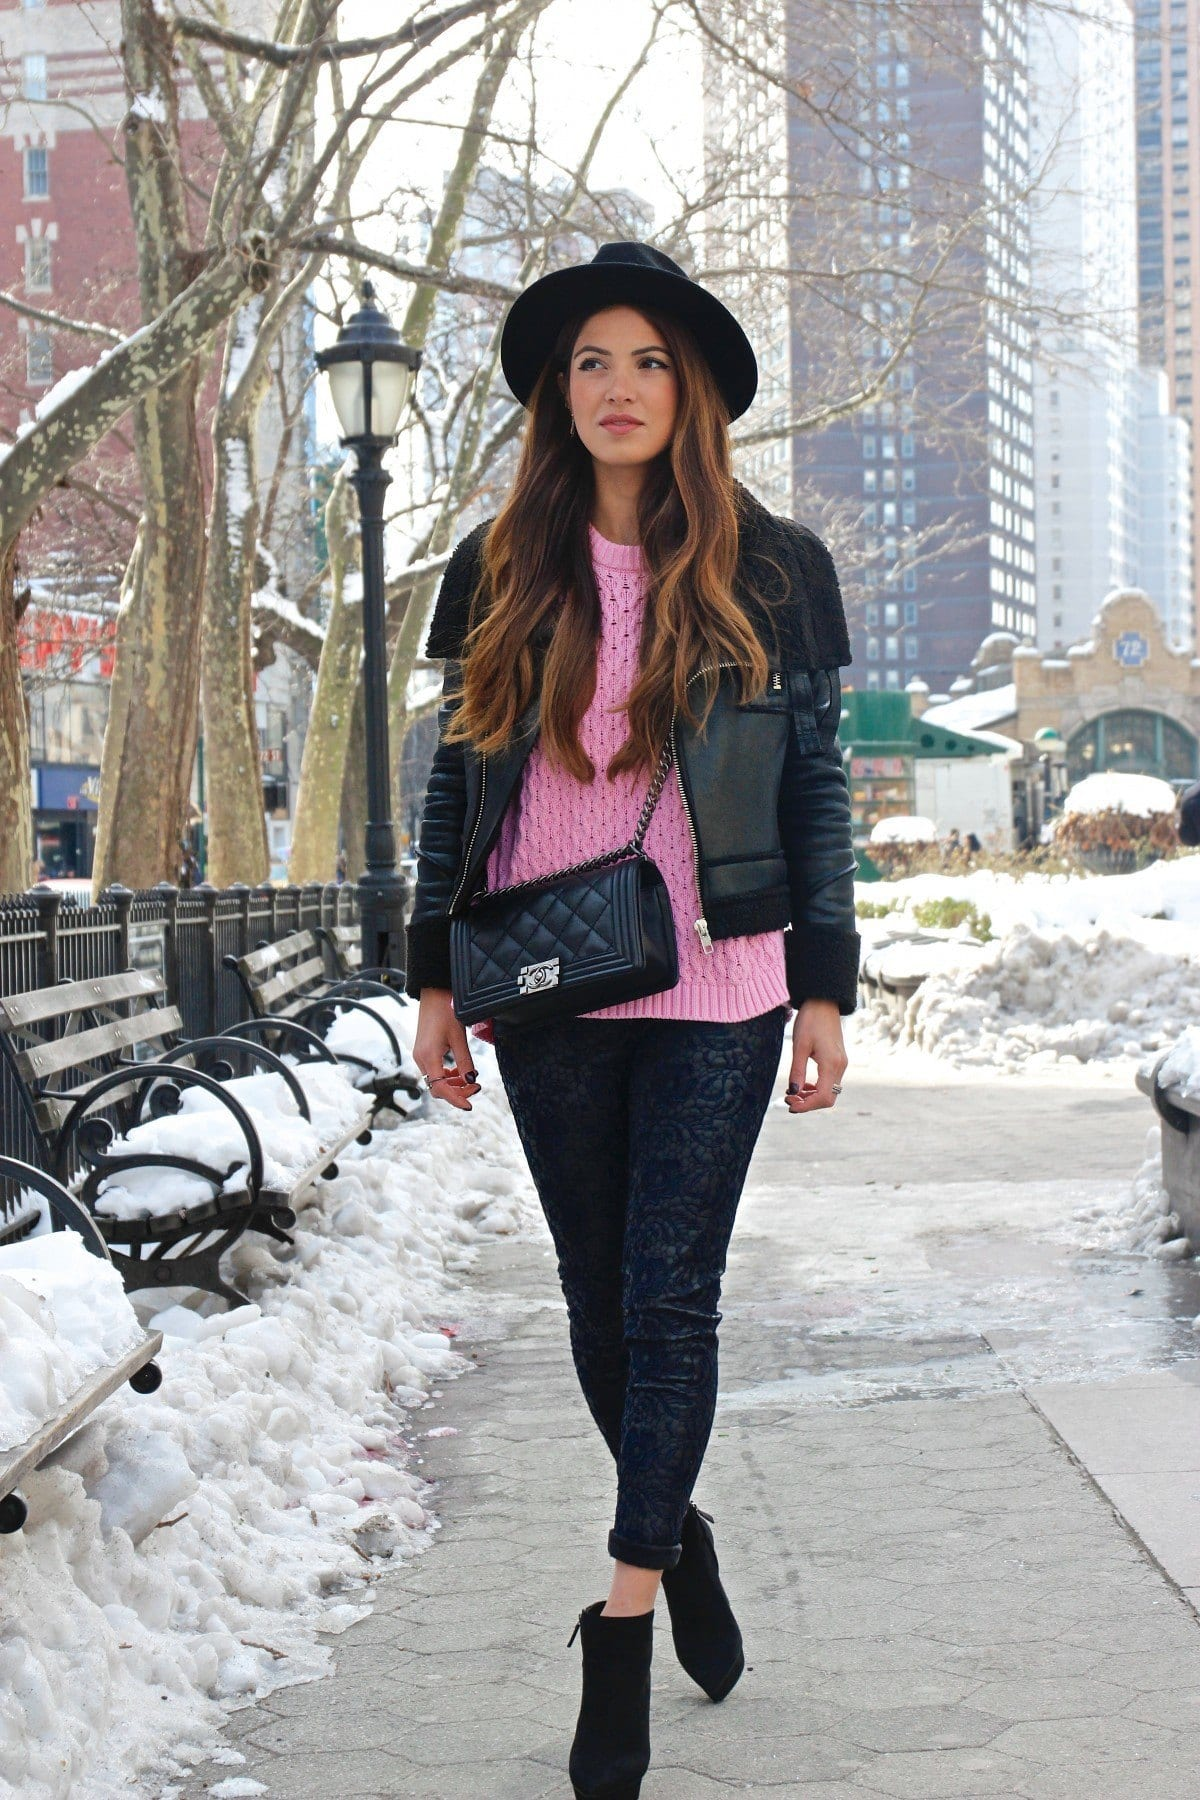 How to Wear: The Best Casual Outfit Ideas | Nashville